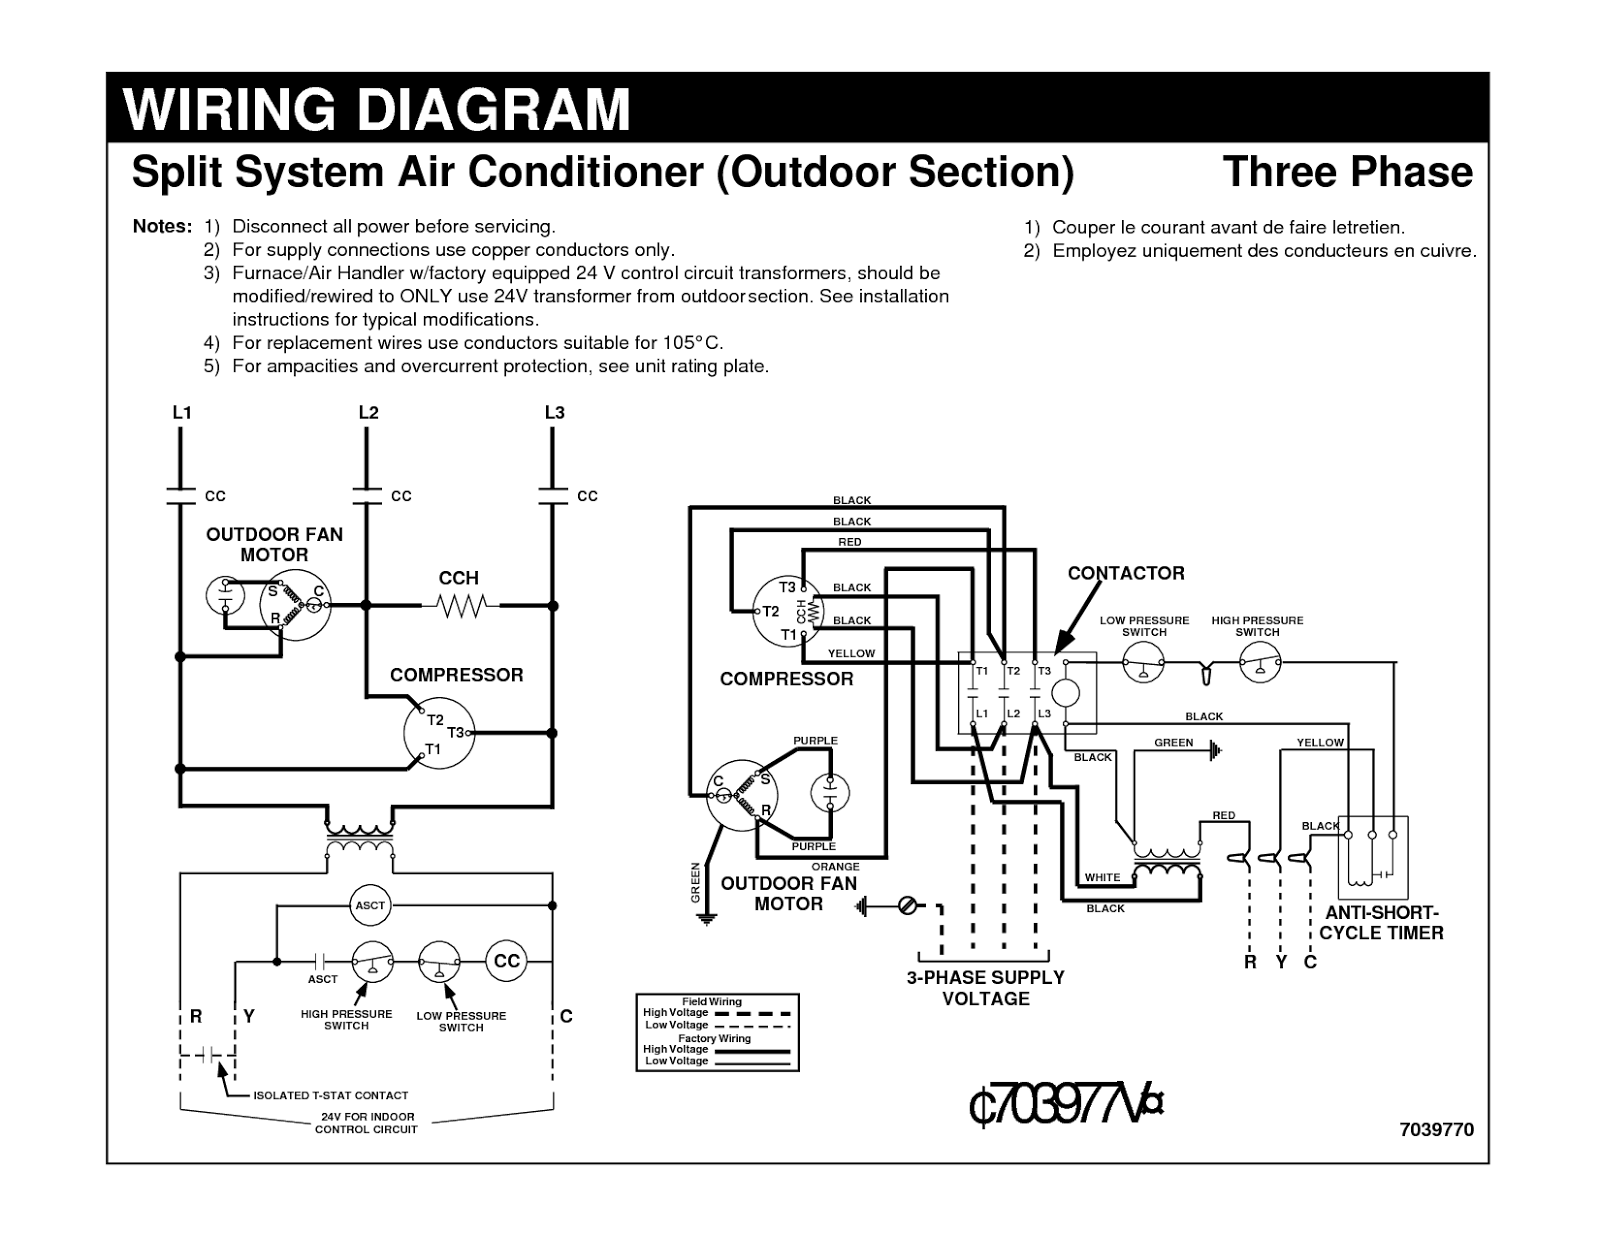 wiring+diagram+in+the+user+manual electrical wiring diagrams for air conditioning systems part one air conditioning electrical wiring diagram at alyssarenee.co